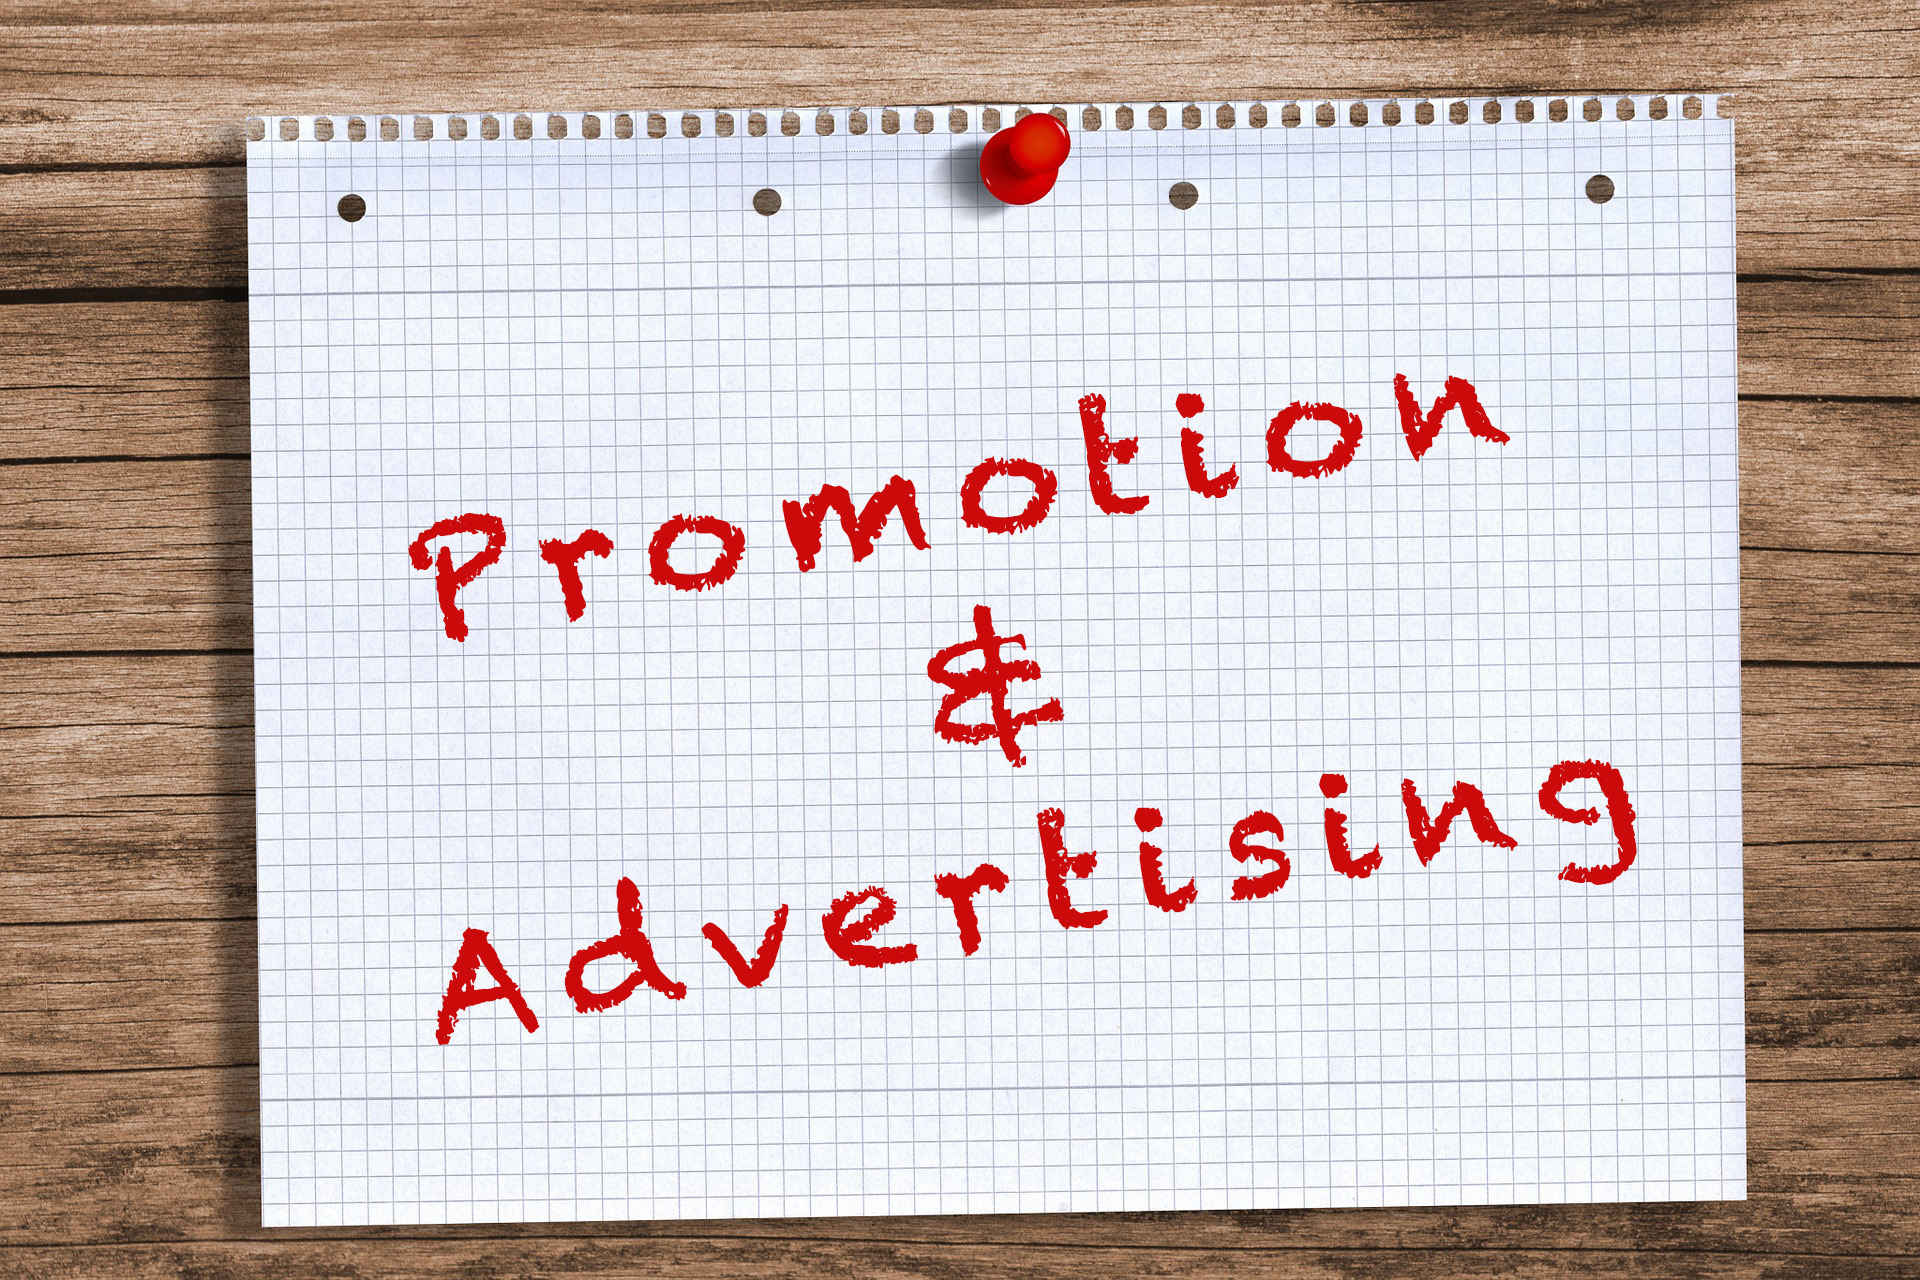 Promotion and advertising - Changing Places Real Estate